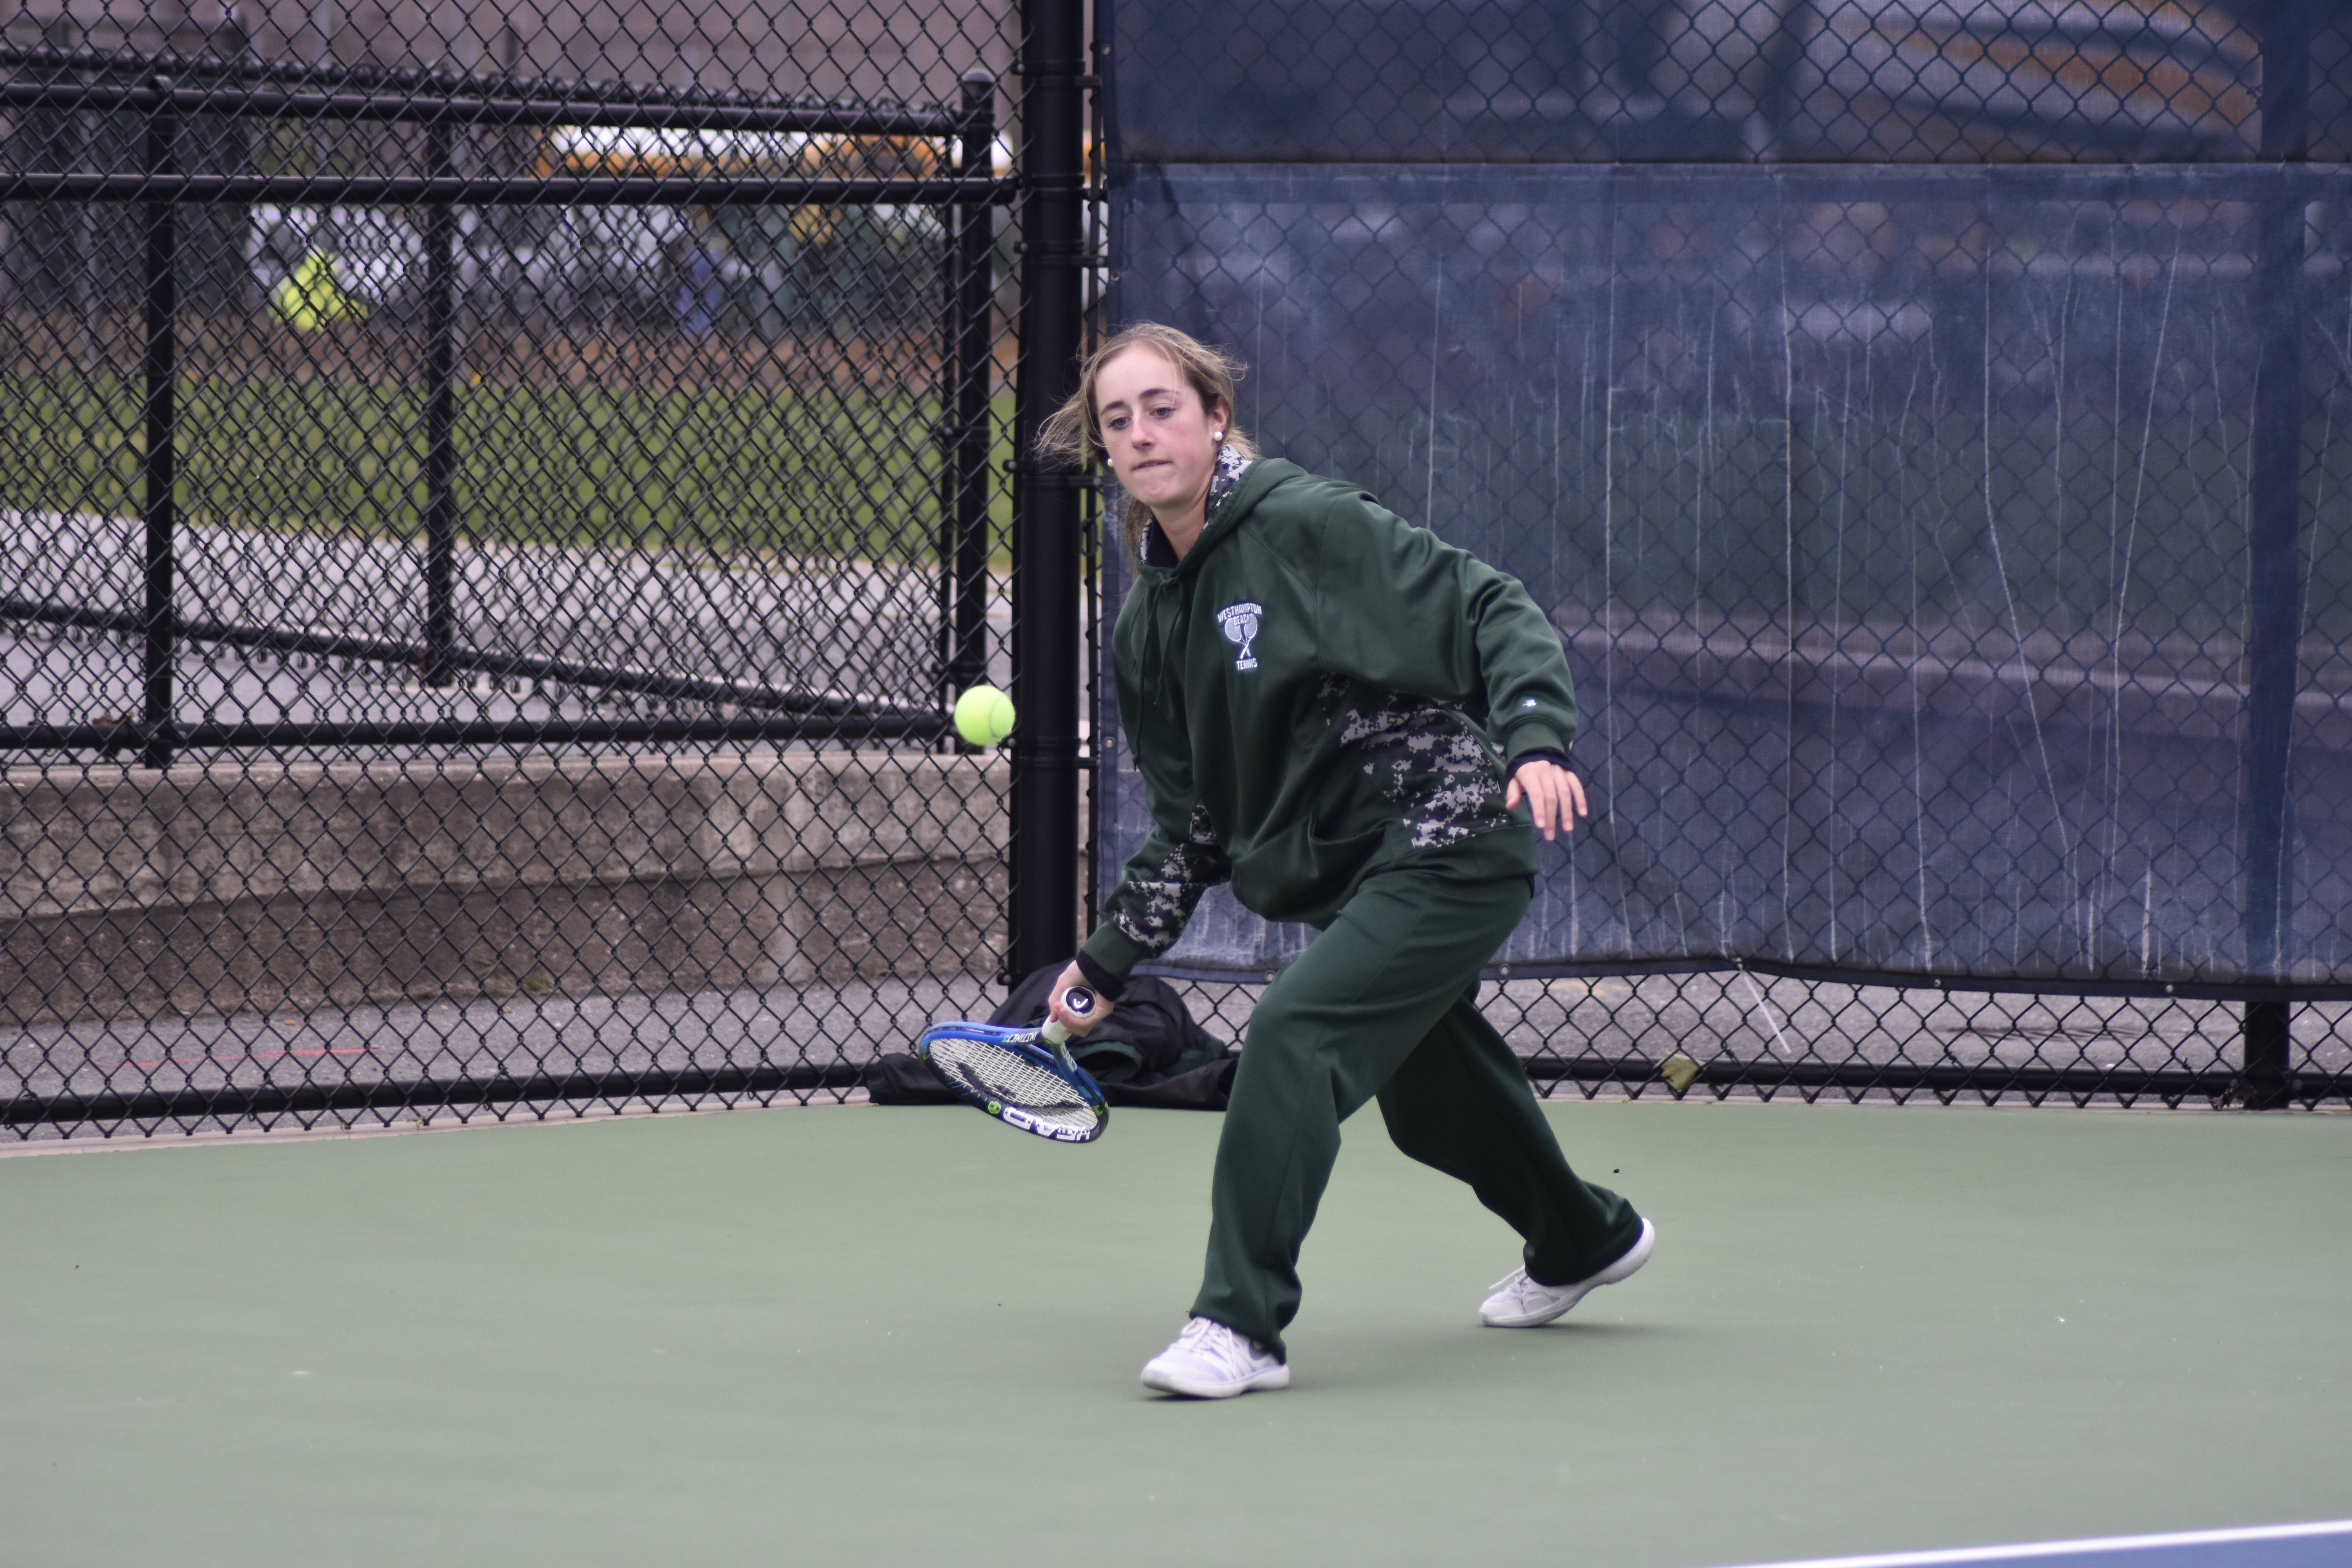 Jen Curran, pictured, won the doubles title with teammate Rose Peruso